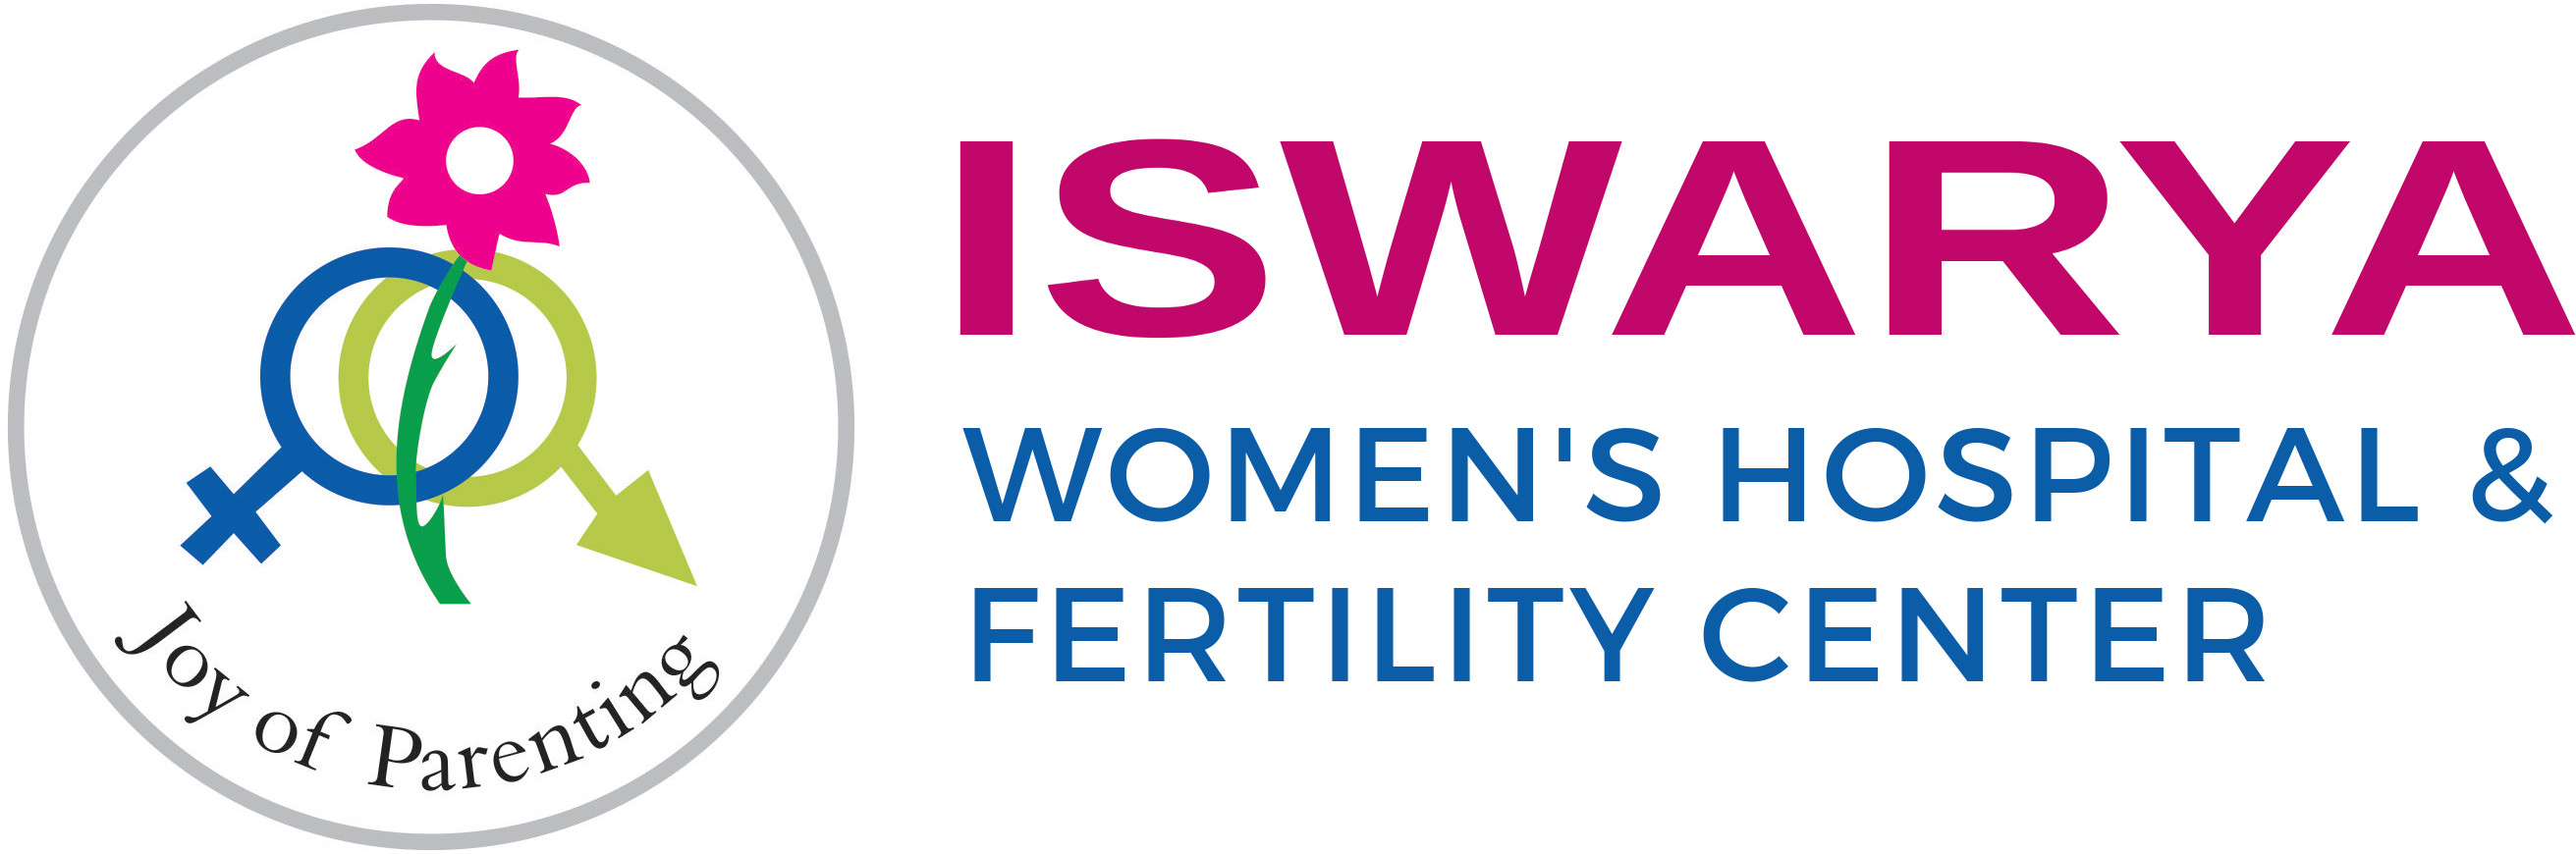 Iswarya Fertility Test Tube Baby And Research Centre